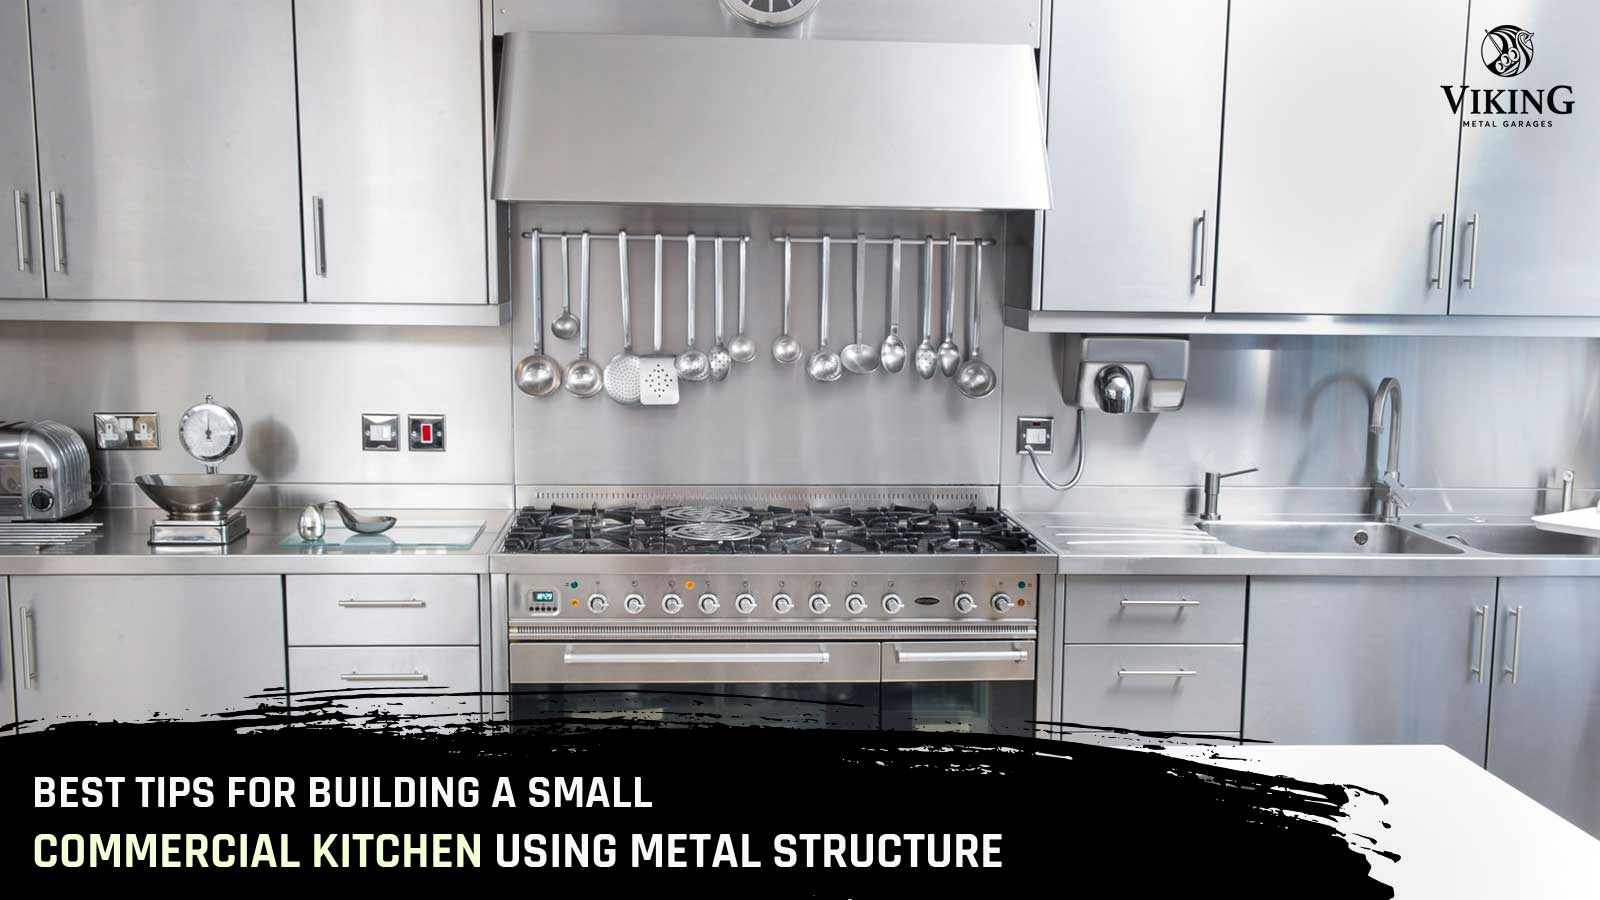 Best Tips for Building a Small Commercial Kitchen Using Metal Structure